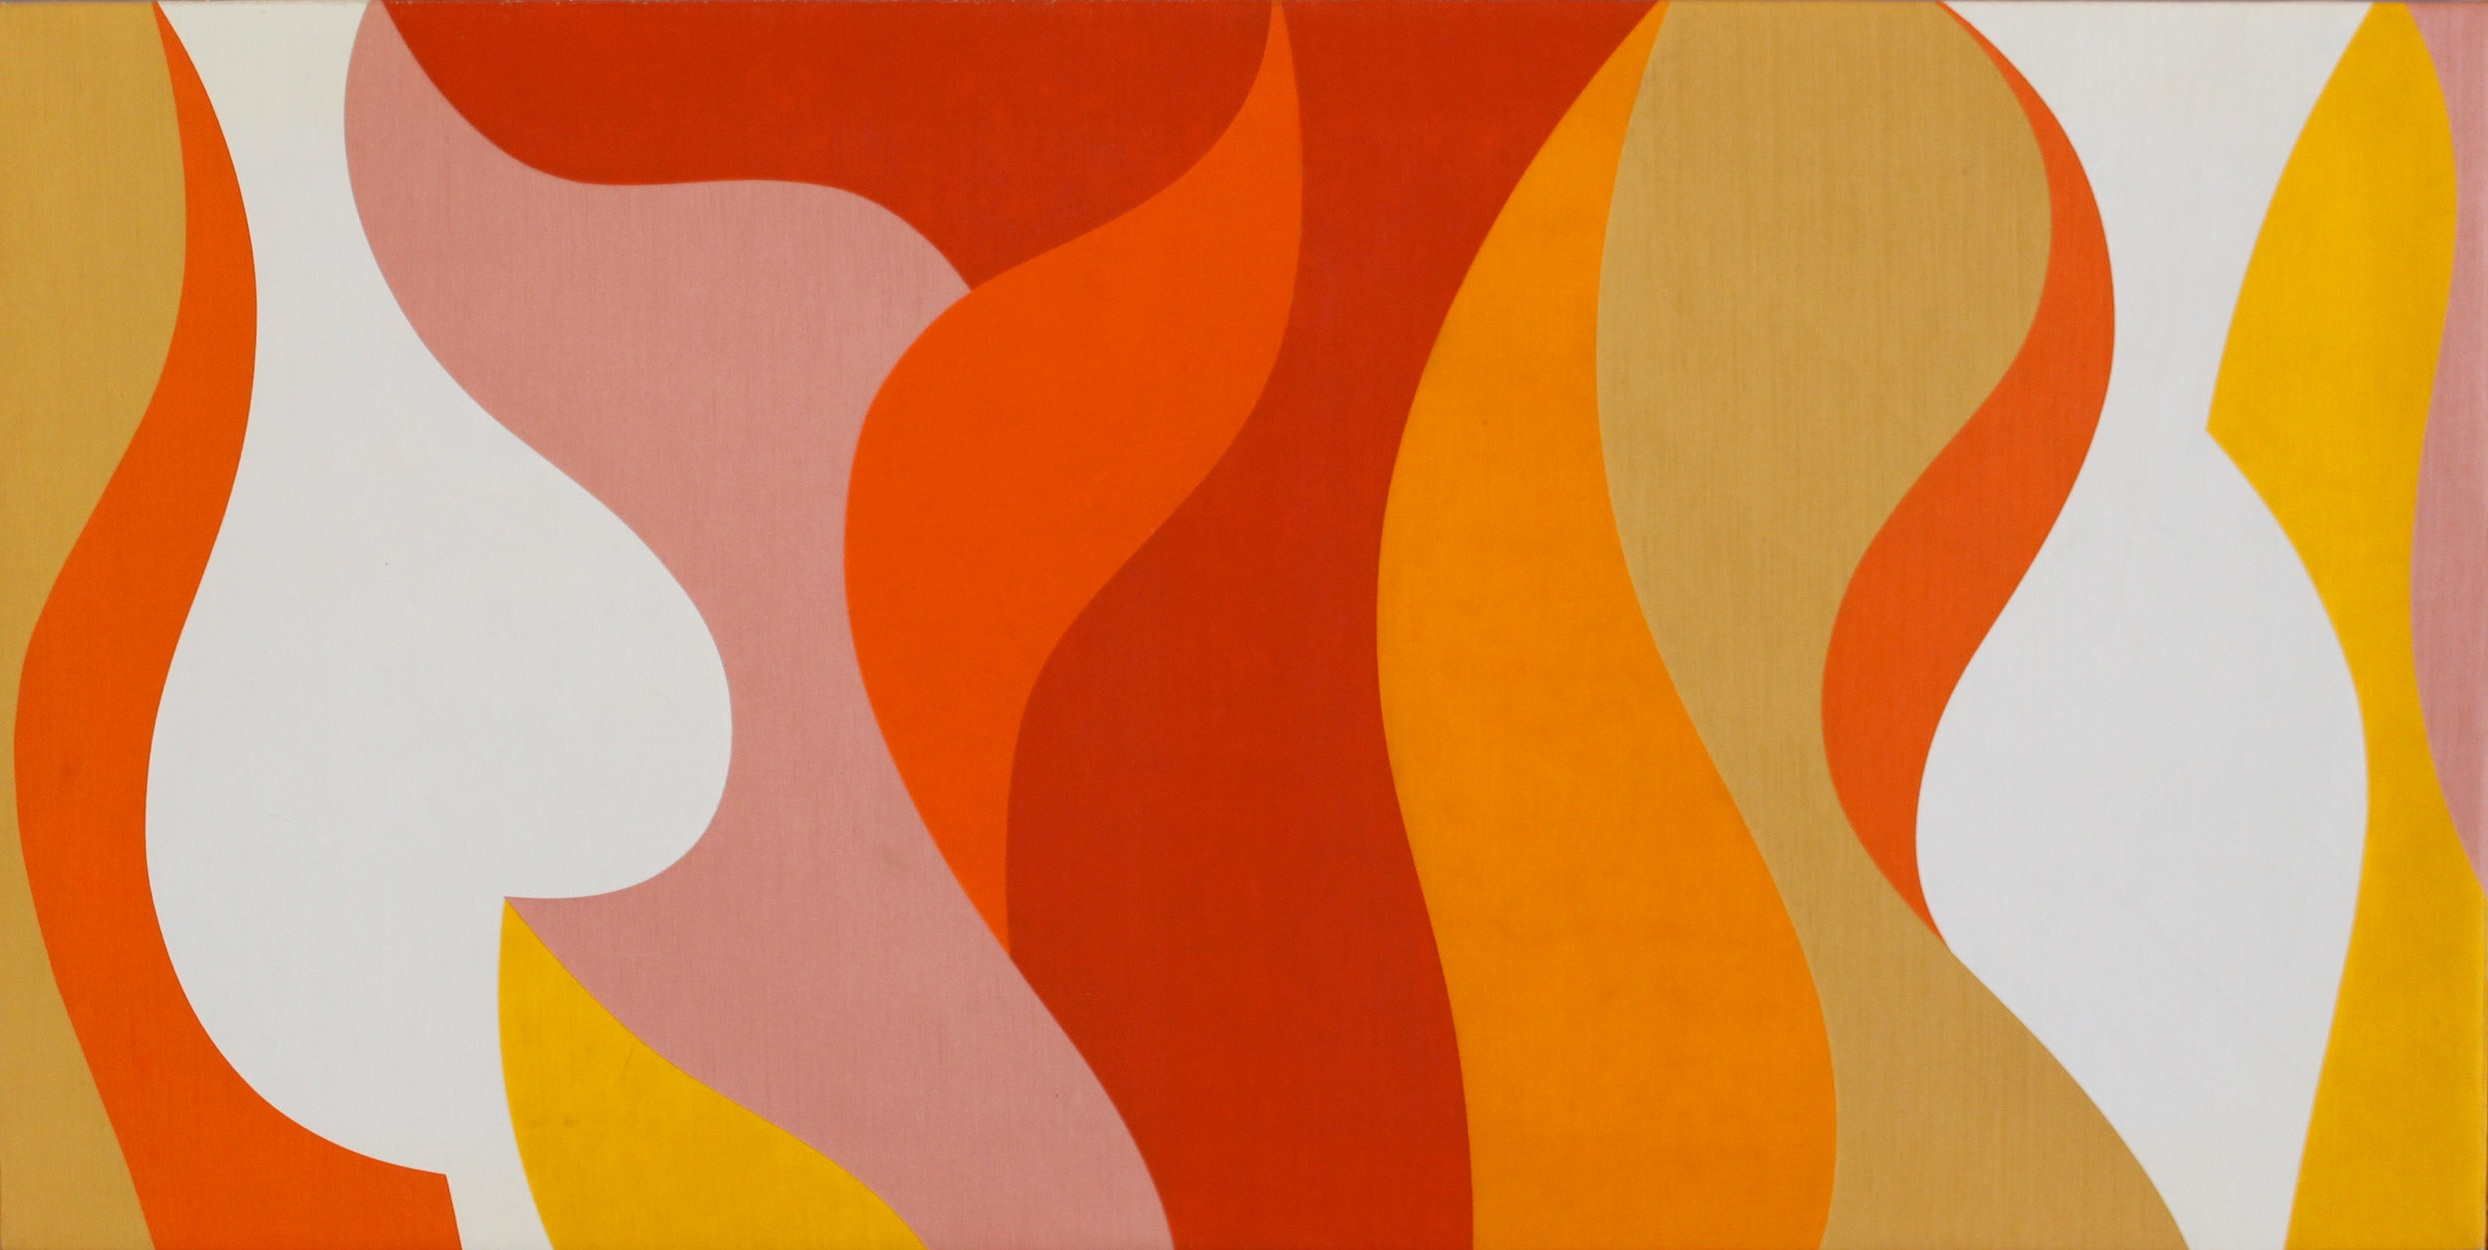 #30 , 1965  oil on canvas 25 1/2 x 51 inches; 65 x 130 centimeters